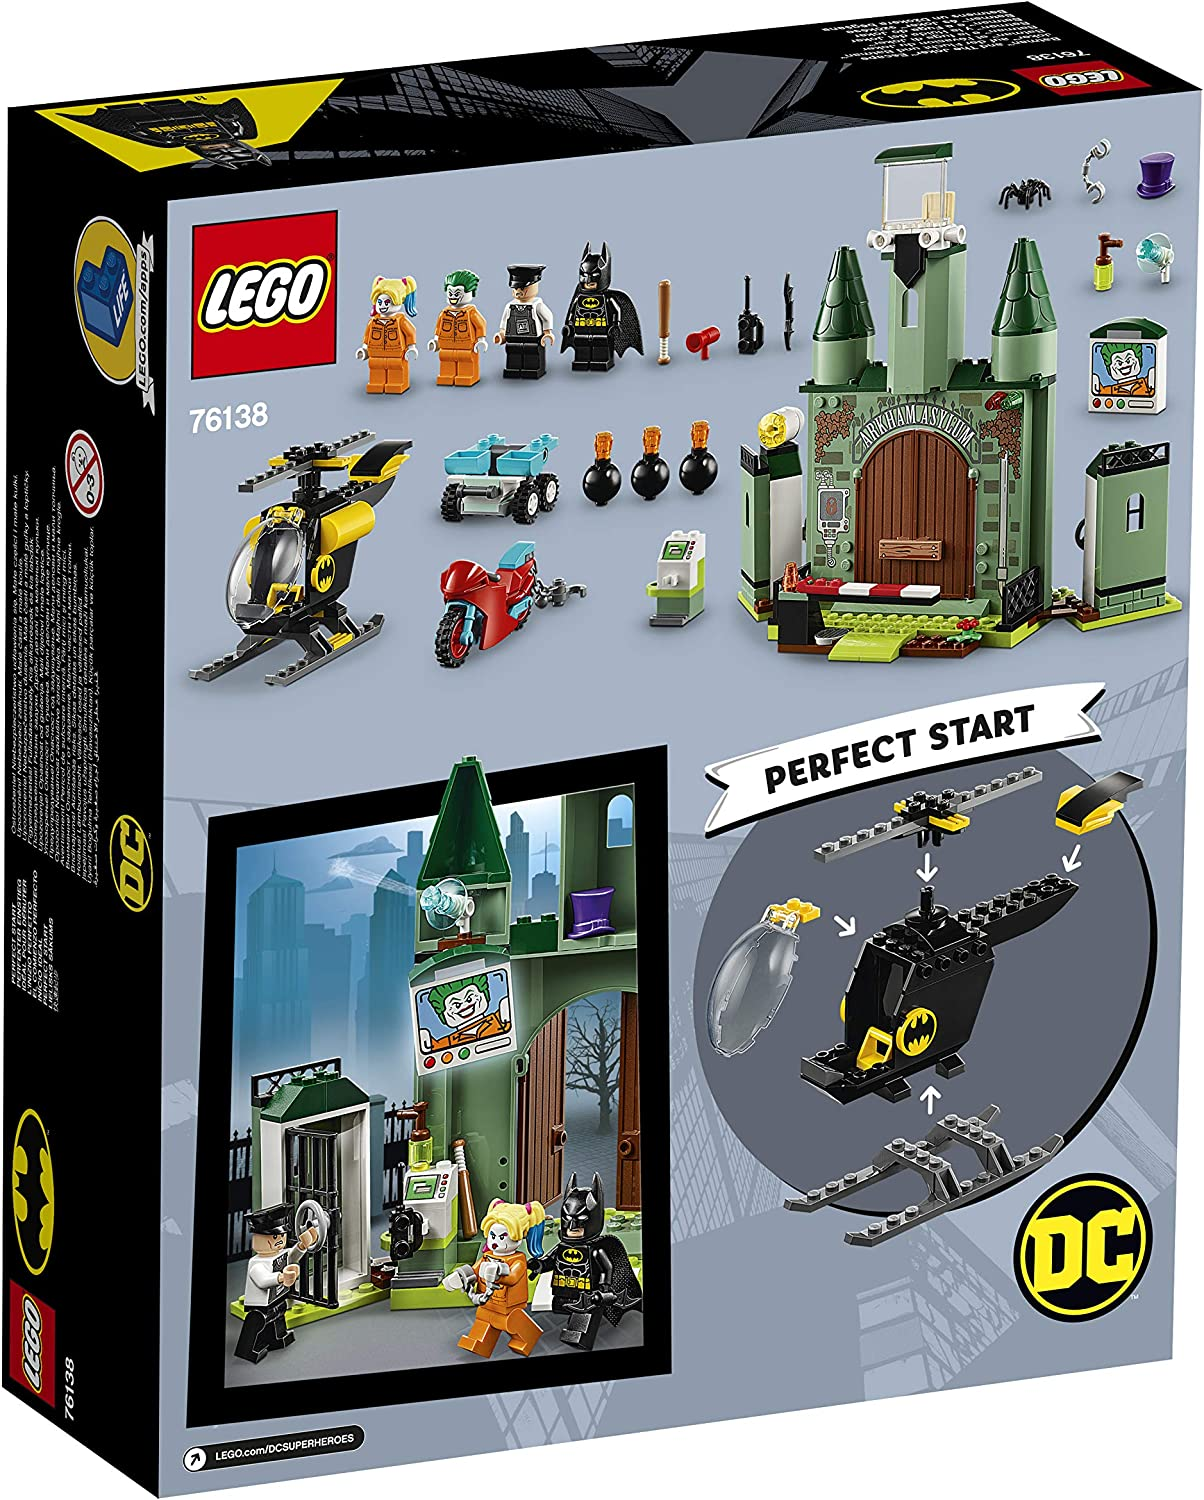 LEGO 76138 DC Batman 4 Toys for Boys and Girls Age 4 with Buildable Helicopter Batman and The Joker Escape